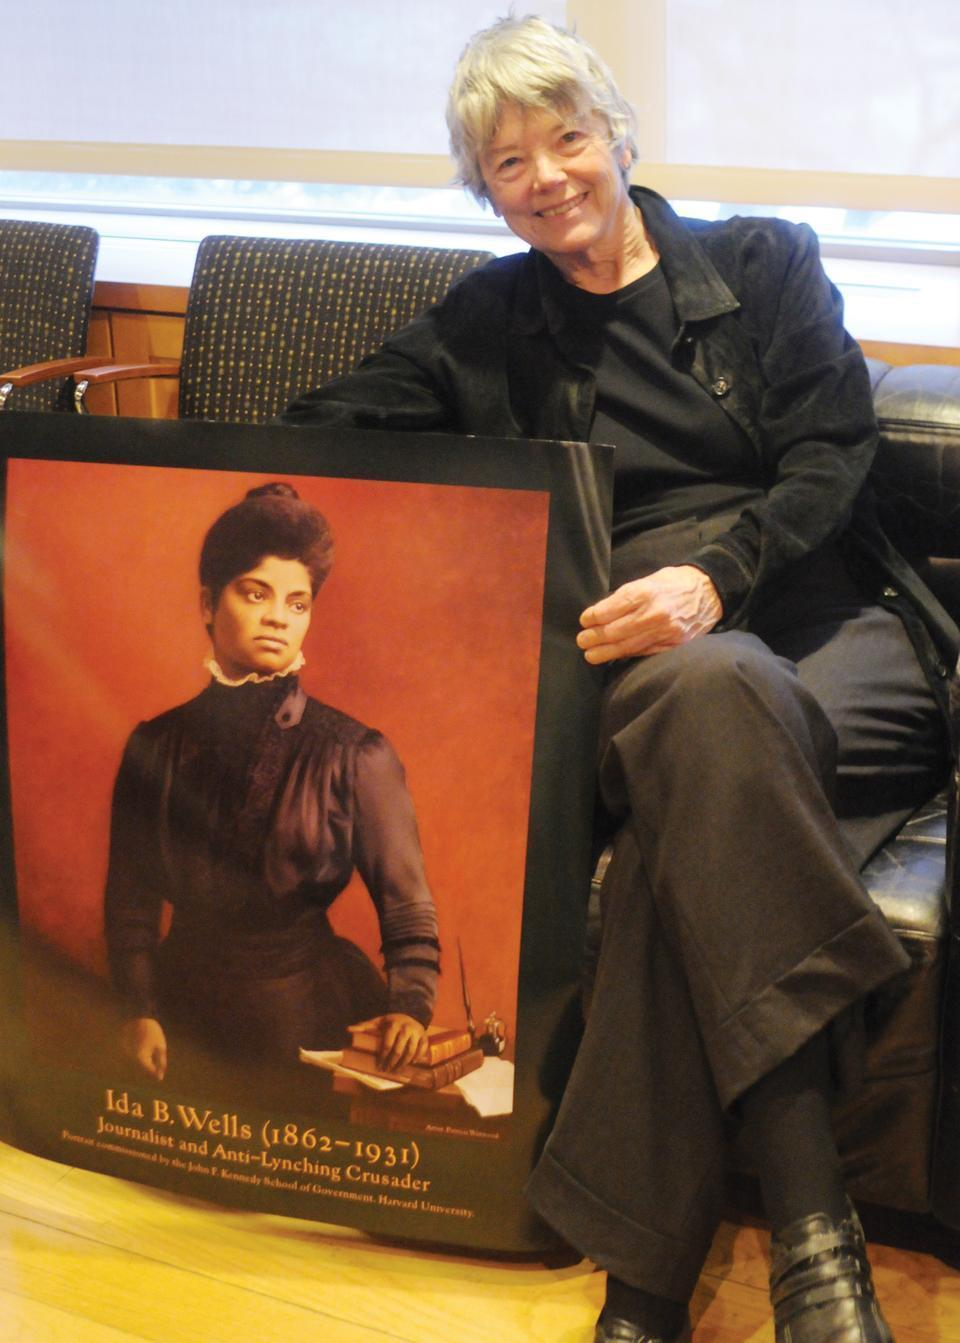 Harvard Kennedy School Professor Jane Mansbridge, pictured here with a poster of Ida B. Wells, speaks on how women in history measure just as profoundly as men do.